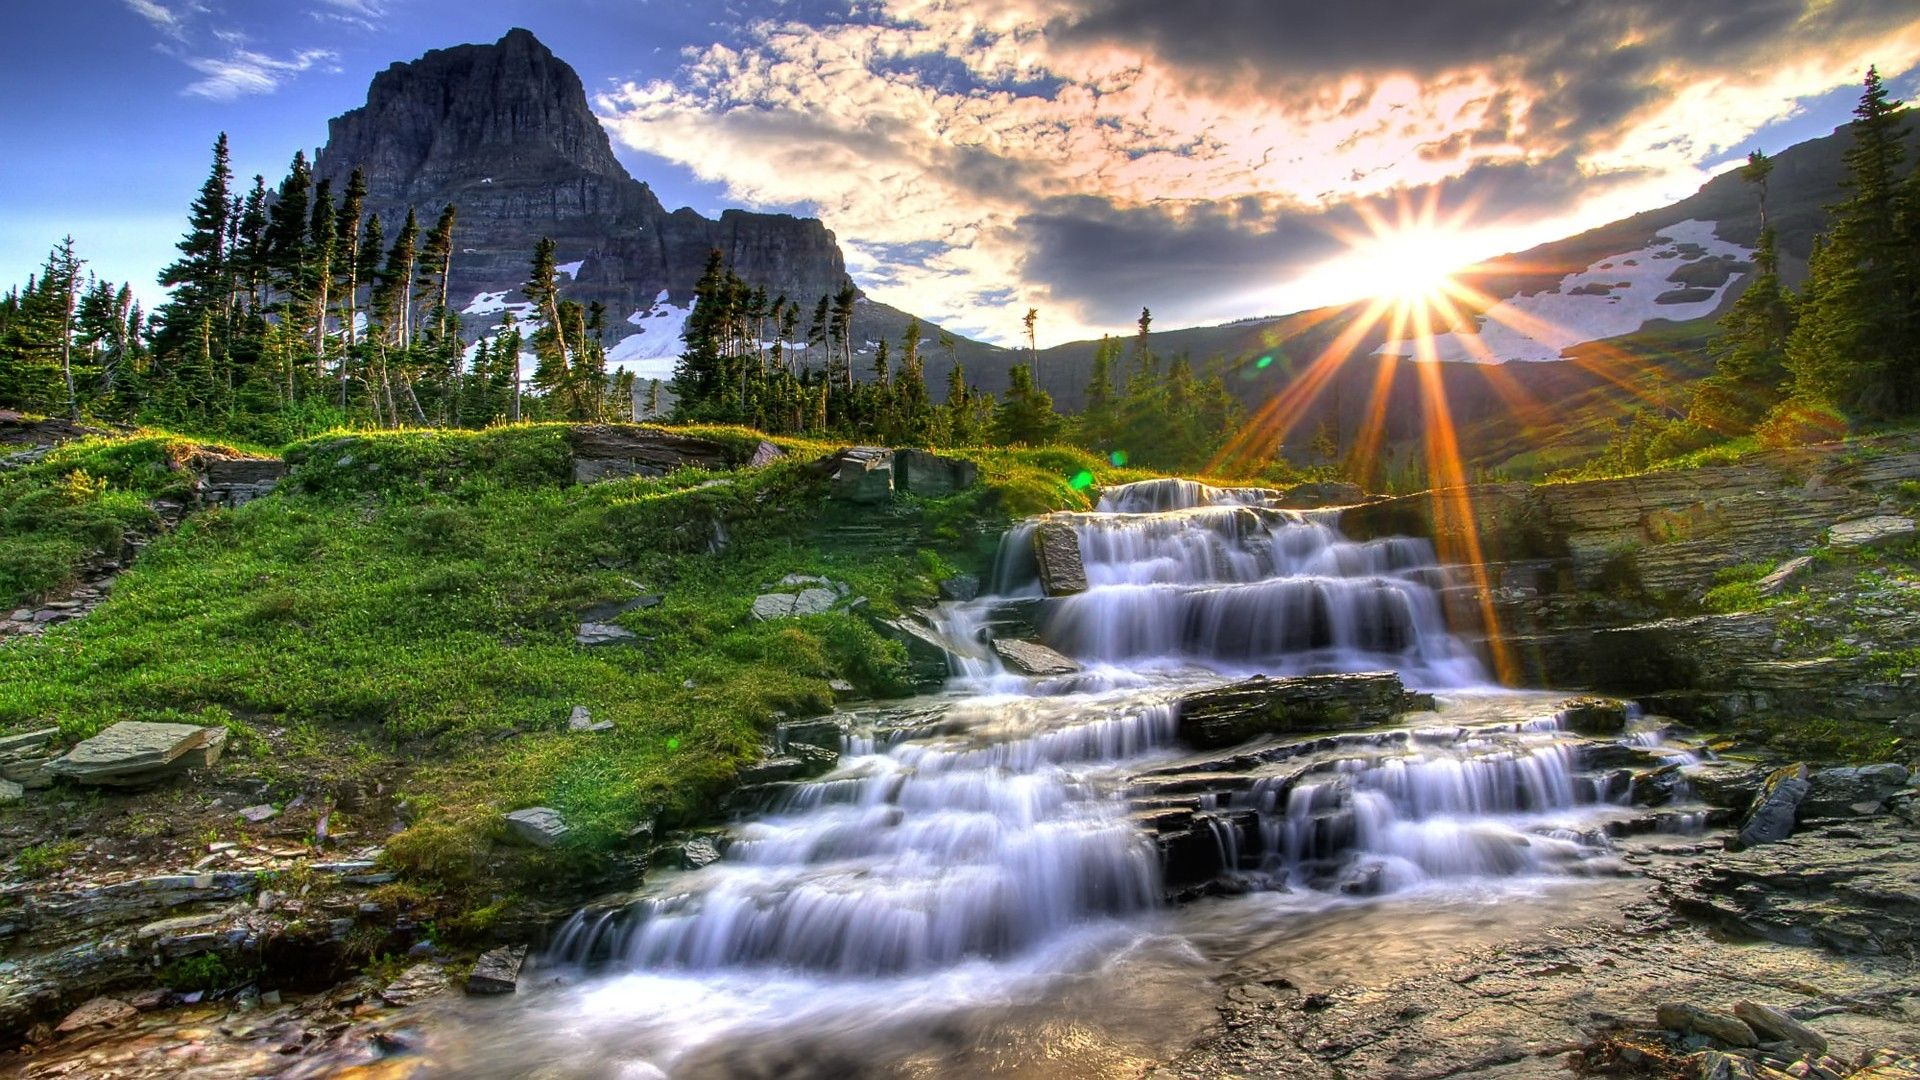 New Background Images Waterfall Waterfall Beautiful Background Wallpapers With Background Images W Beautiful Landscapes Beautiful Waterfalls Beautiful Nature